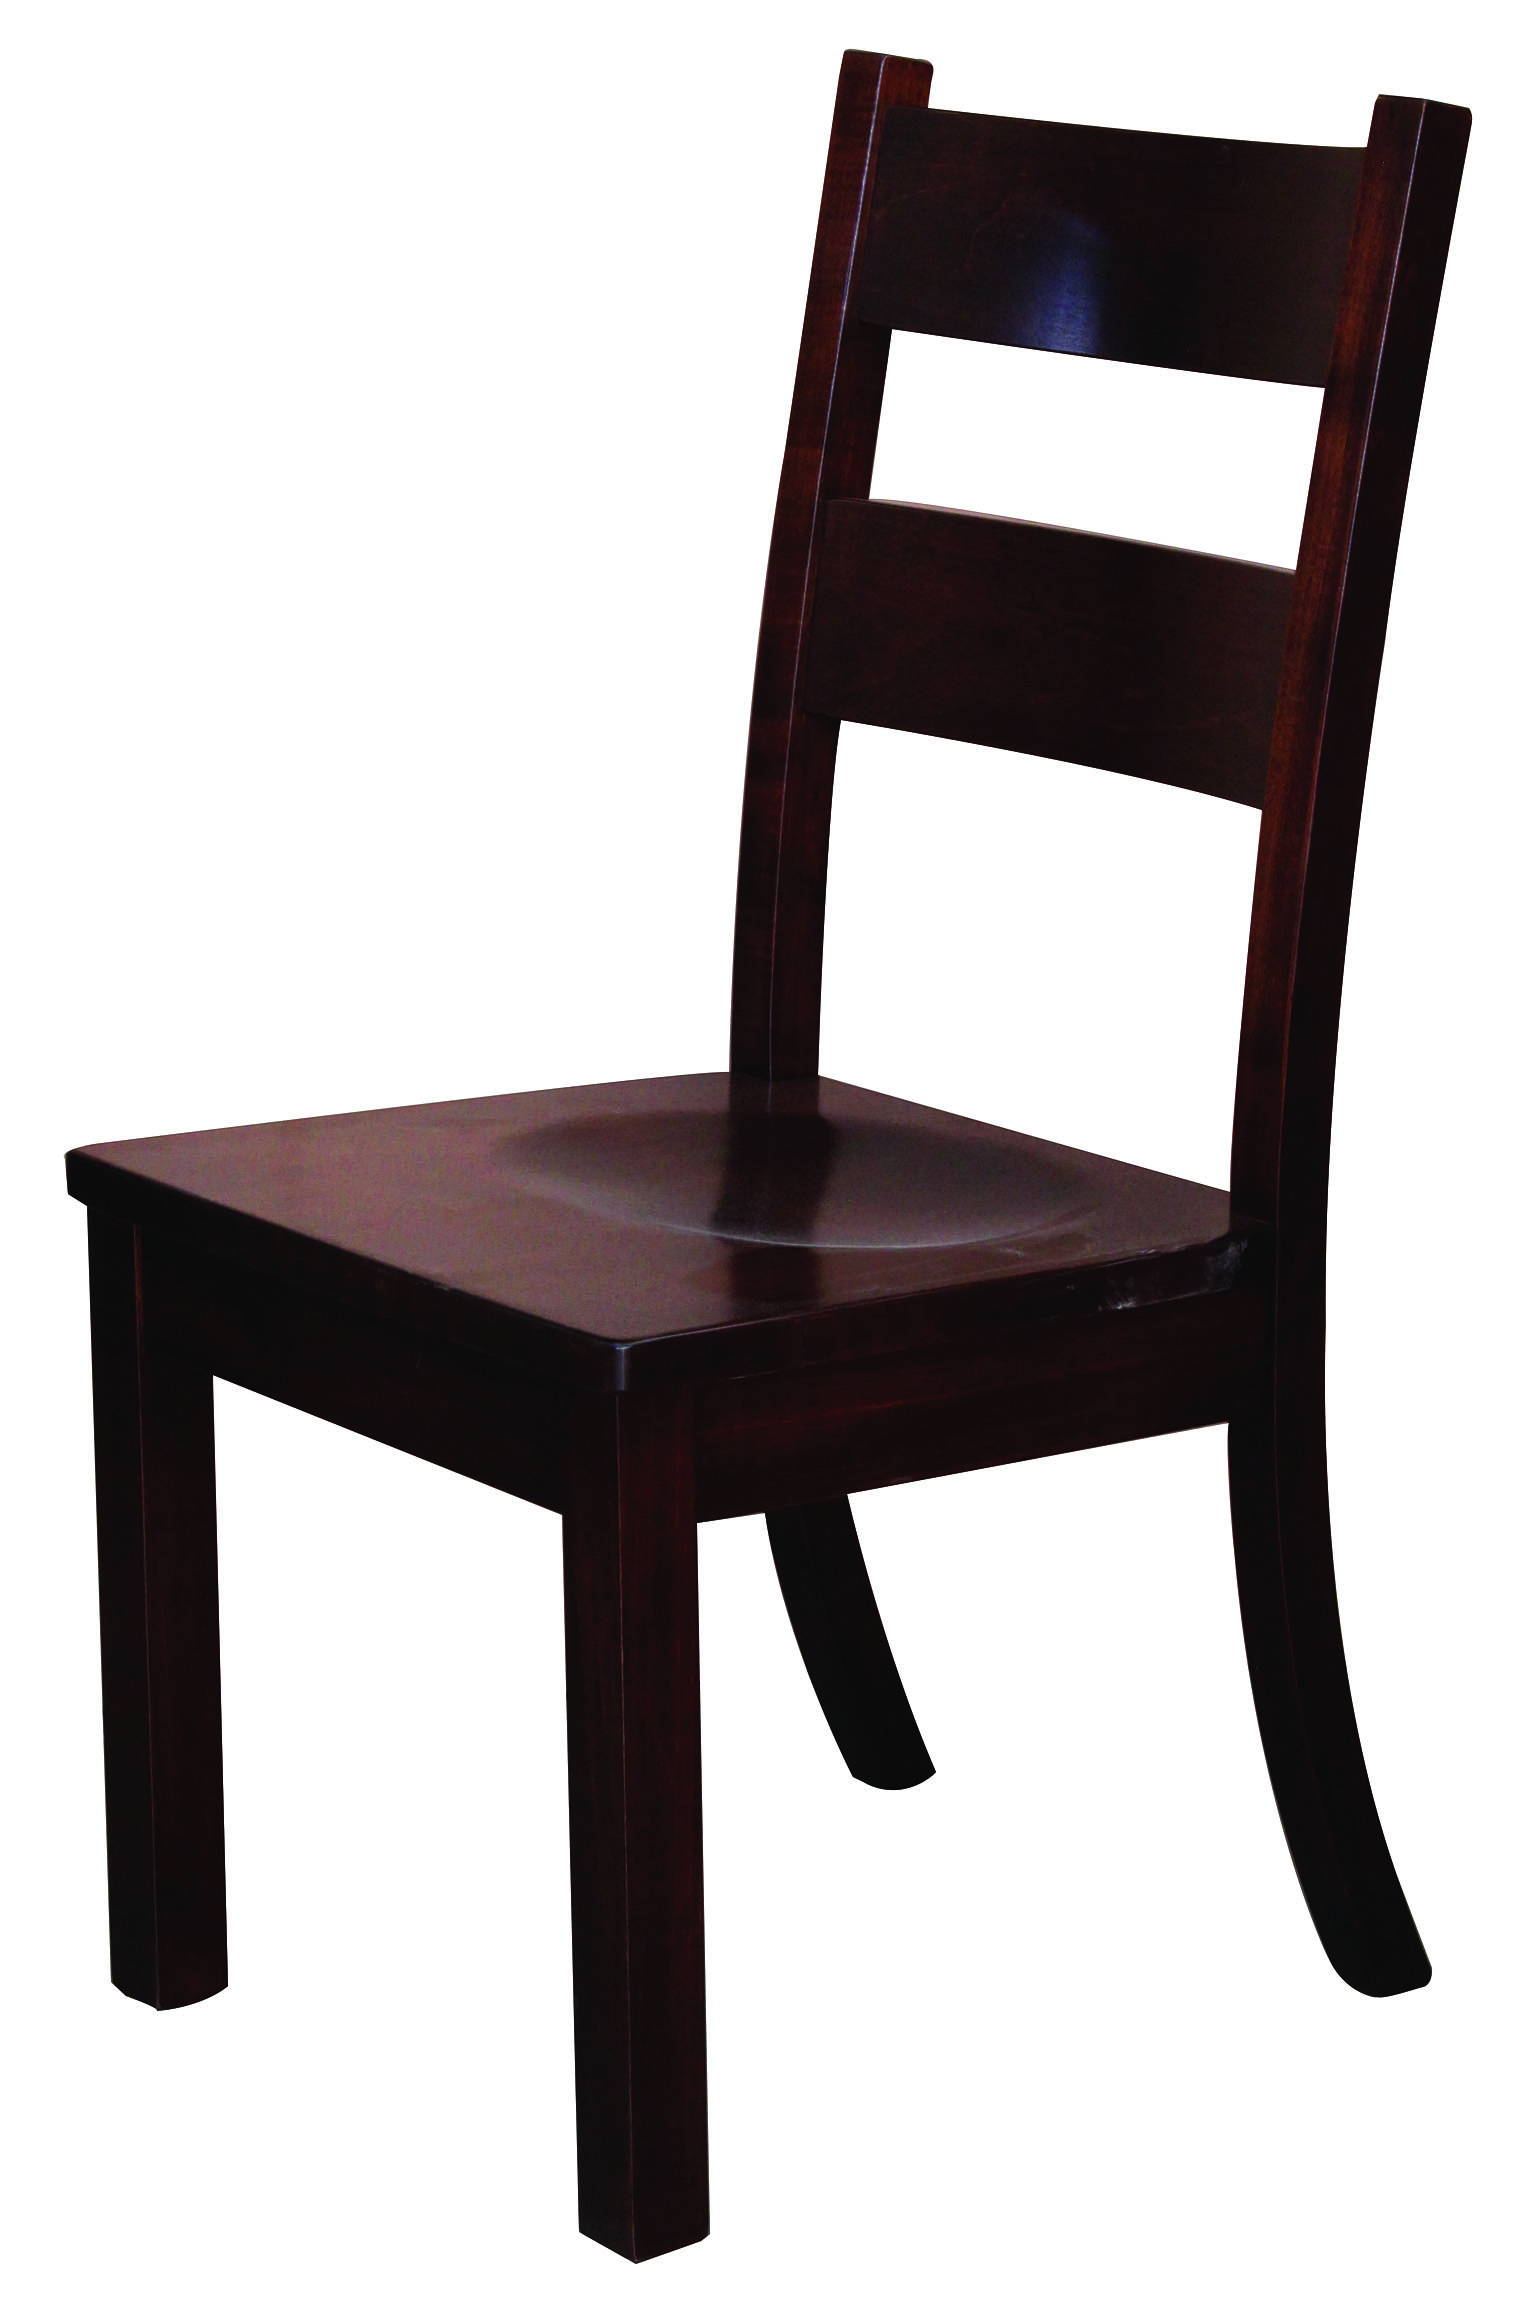 Western Solid Wood, Handcrafted Kitchen Chair or DIning Chair from Harvest Home Interiors Amish Furniture